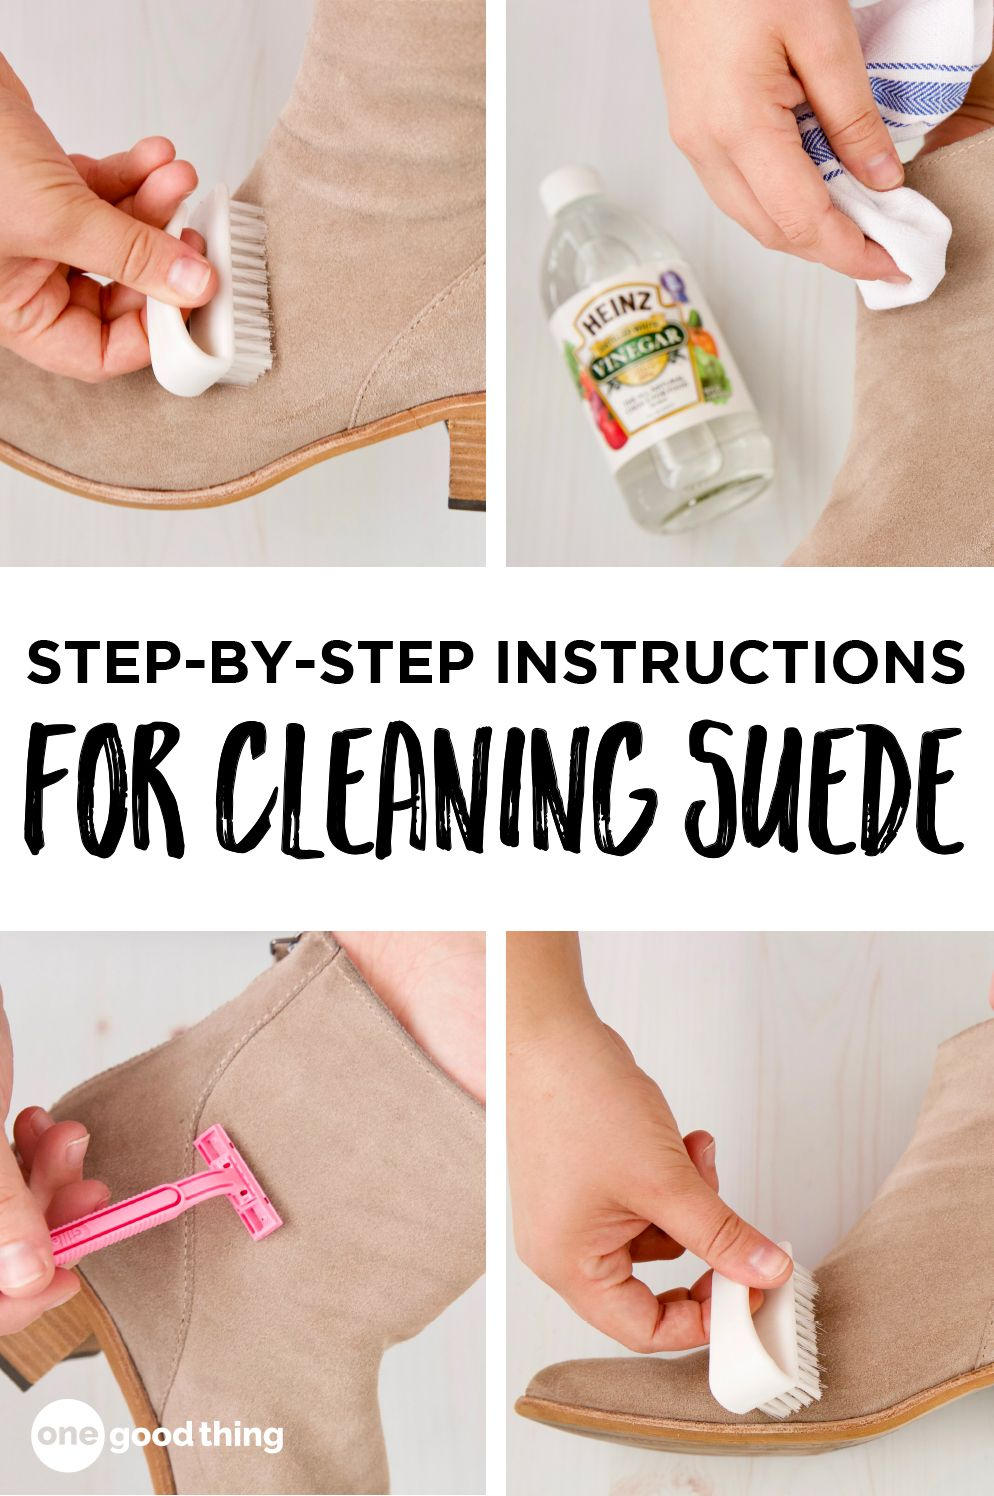 Can You Wash Suede Shoes With Soap And Water How To Clean Suede Shoes The Easy Way One Good Thing By Jillee How To Clean Suede Clean Suede Shoes Fun To Be One